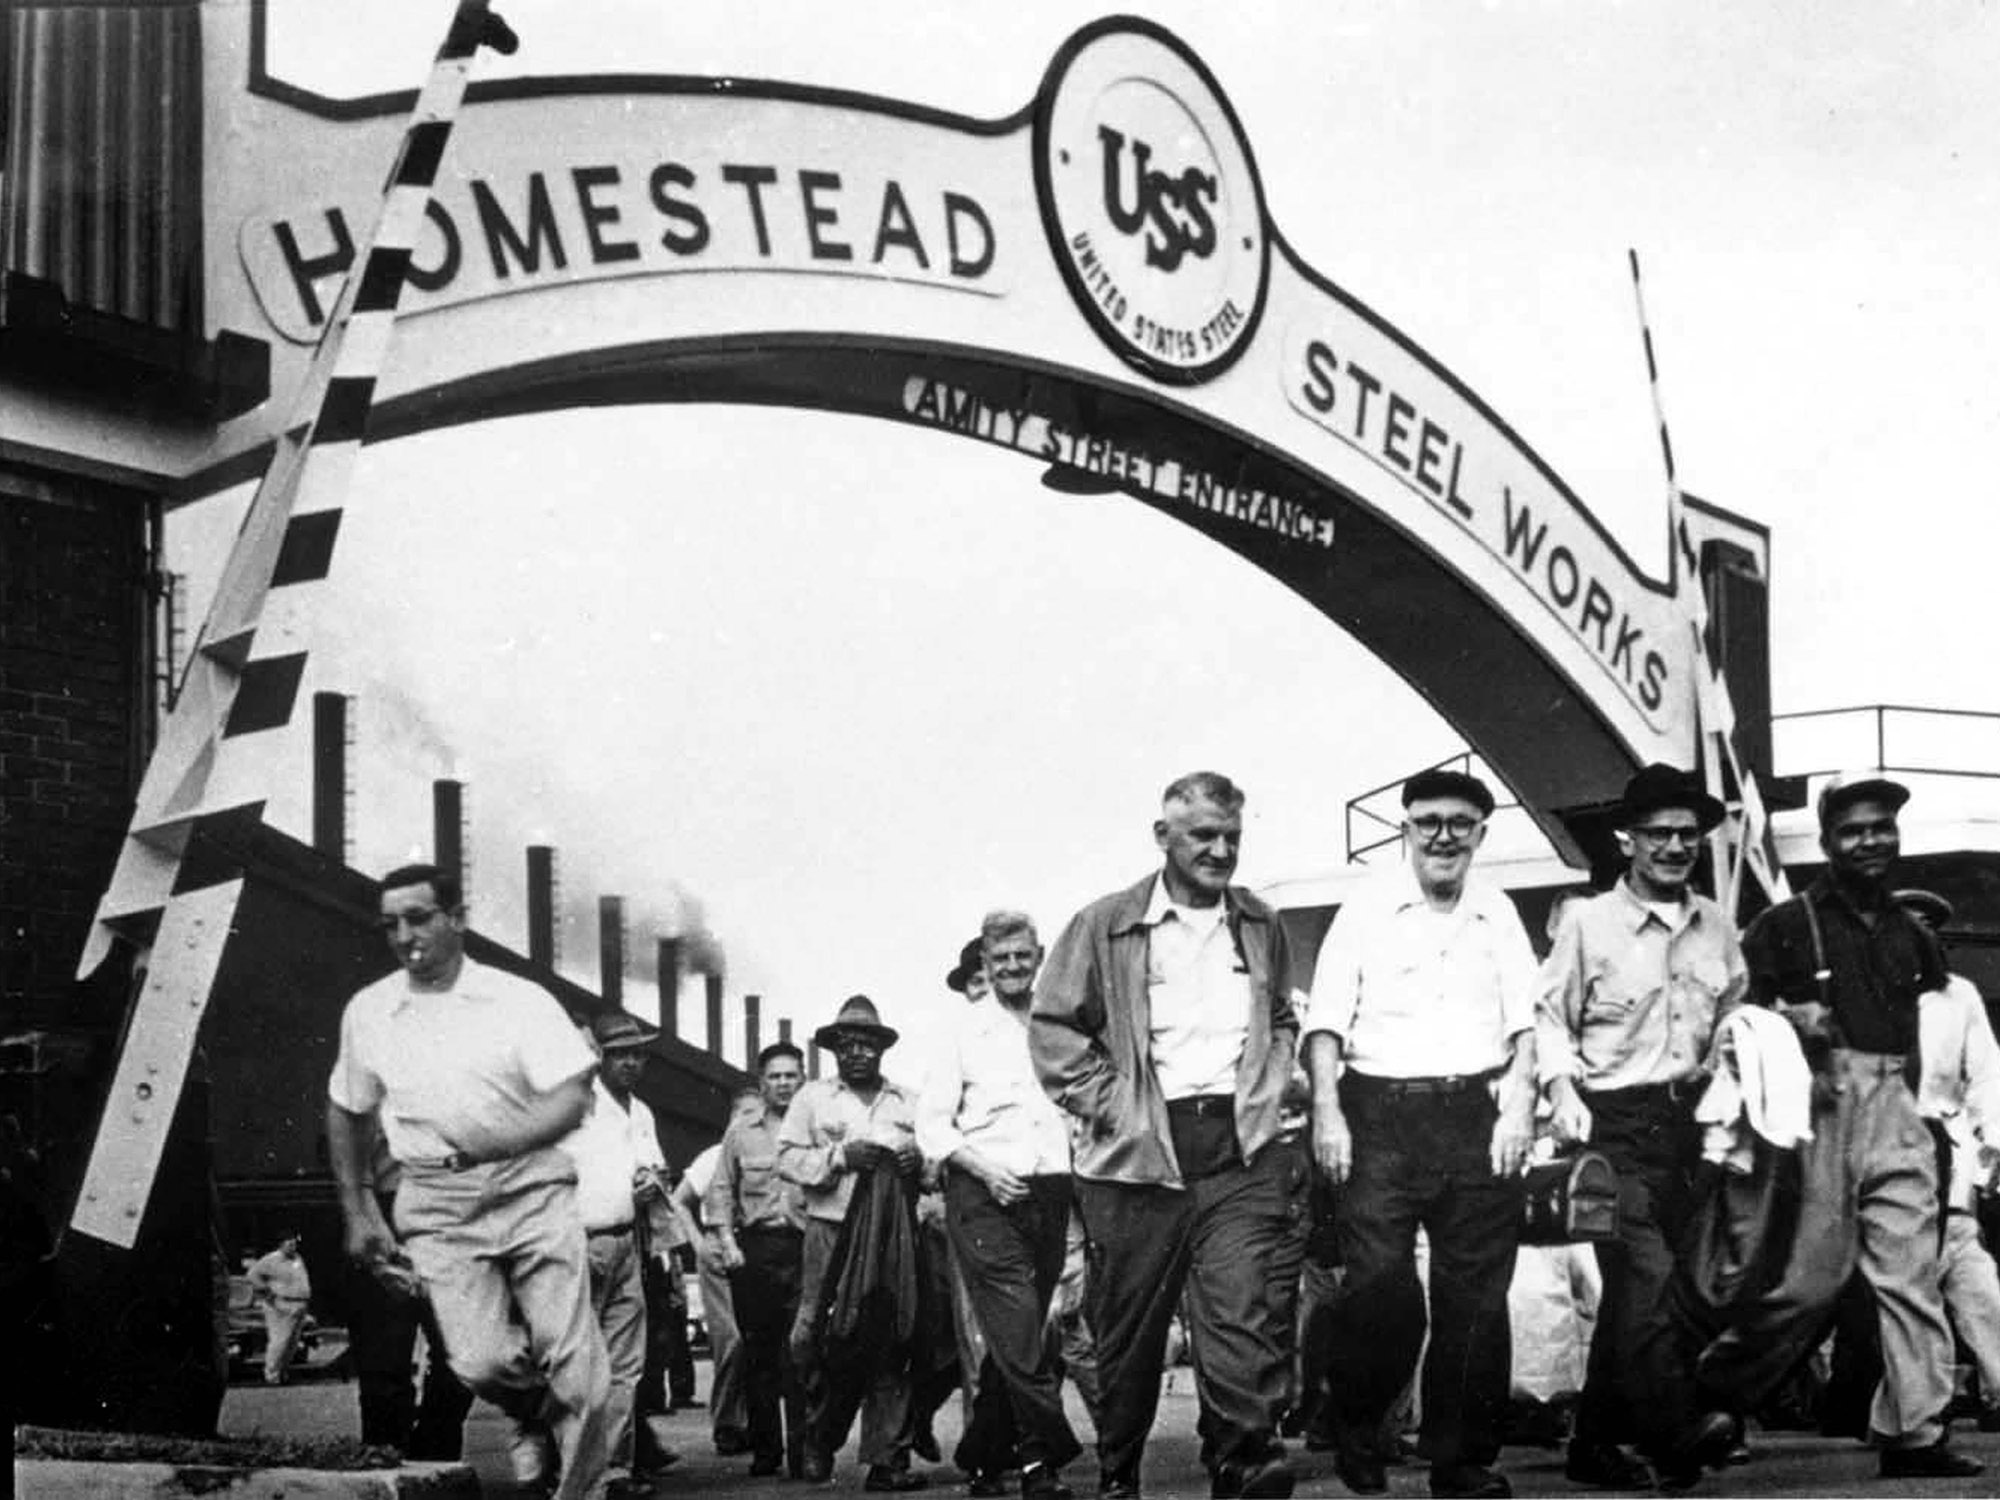 Archival image of workers changing shifts at Homestead Steel Works